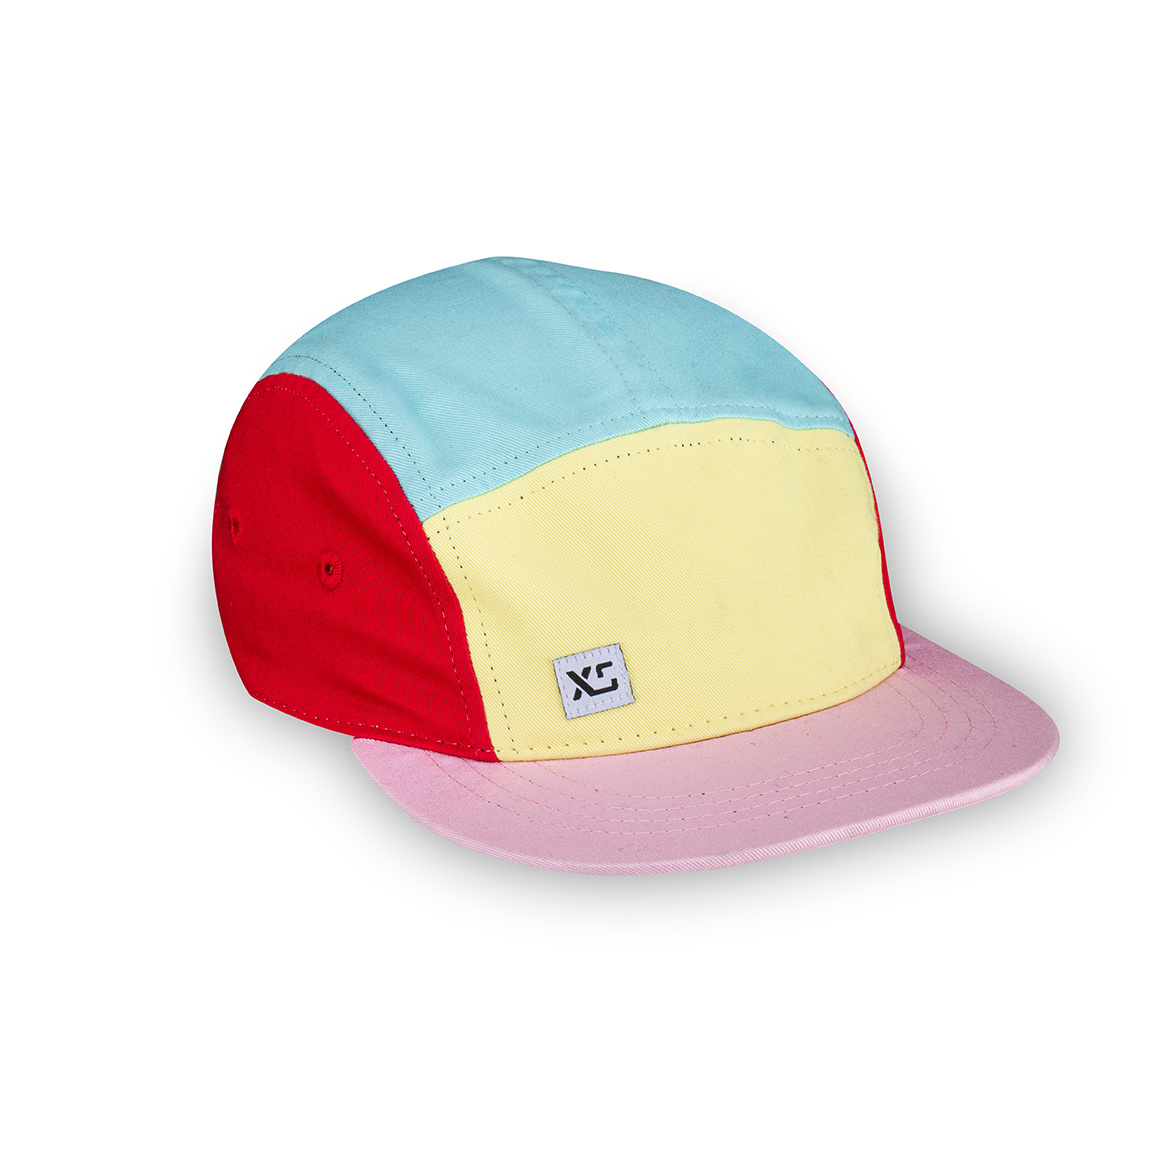 XS Unified XS Unified Kid's 5 Panel Hat Pastel Colourblock